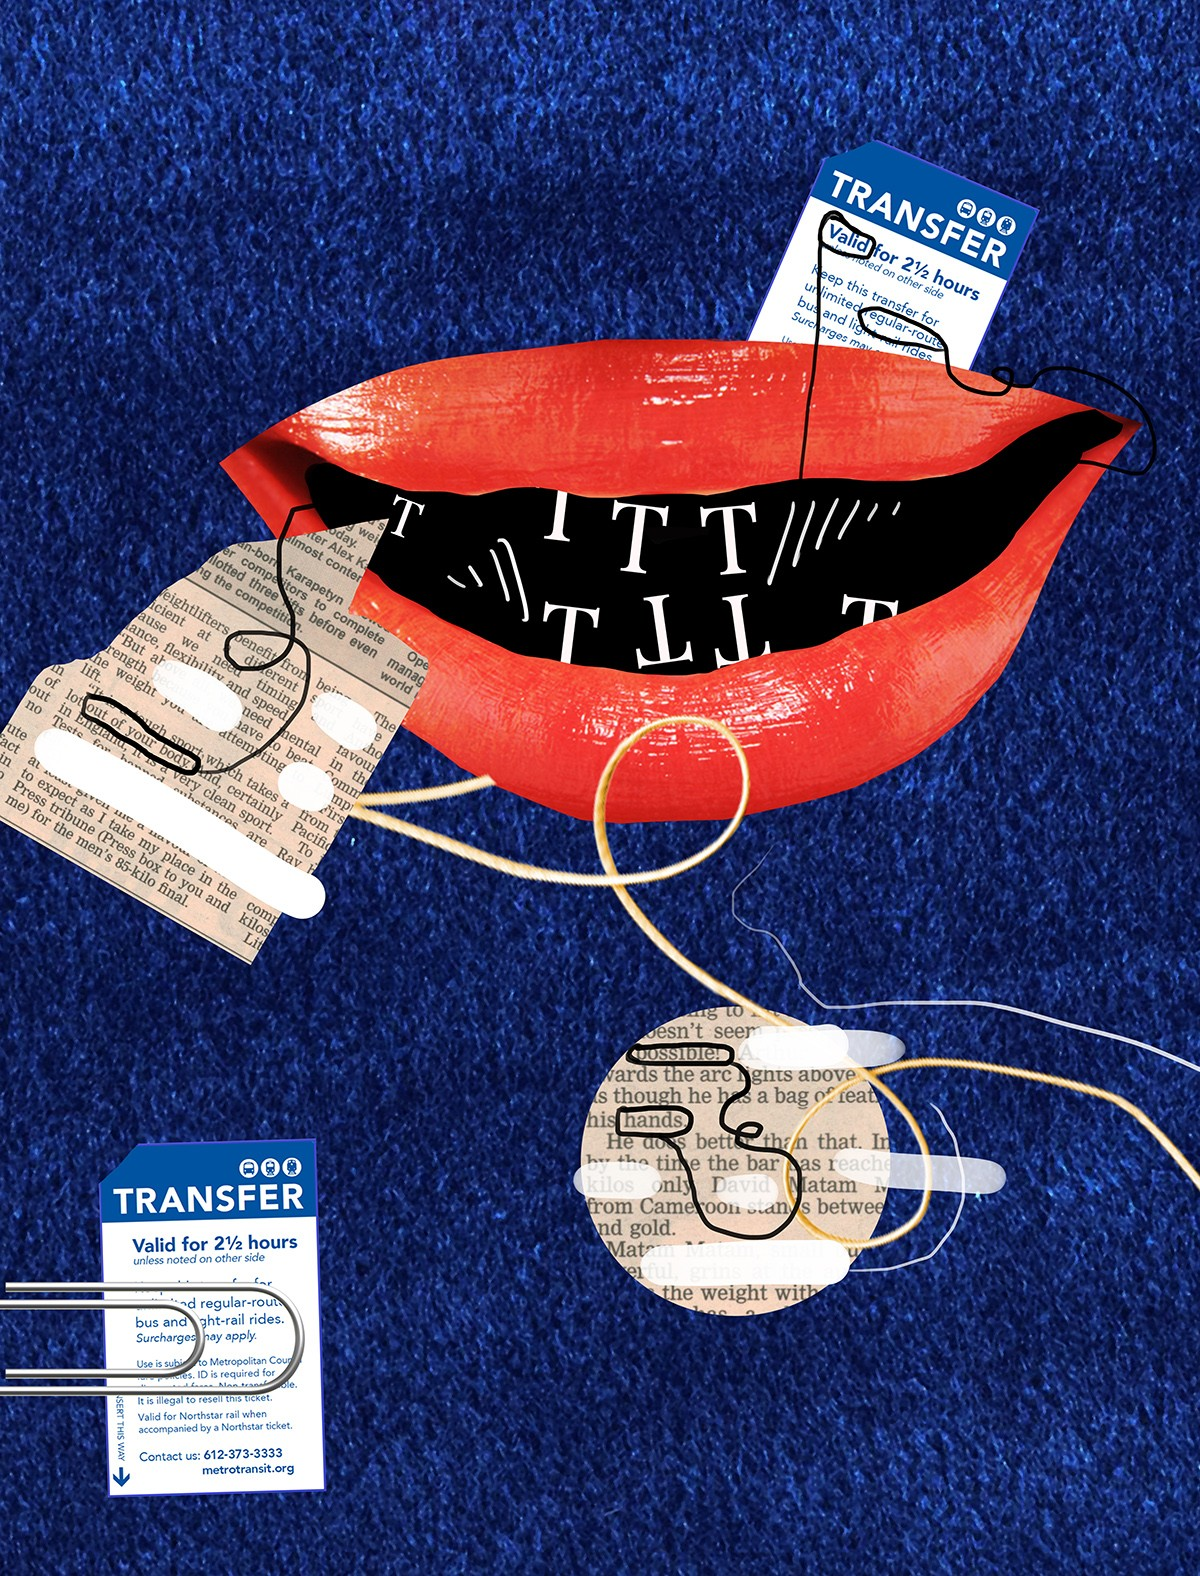 Collage including red lips, public transit cards, and a paperclip.